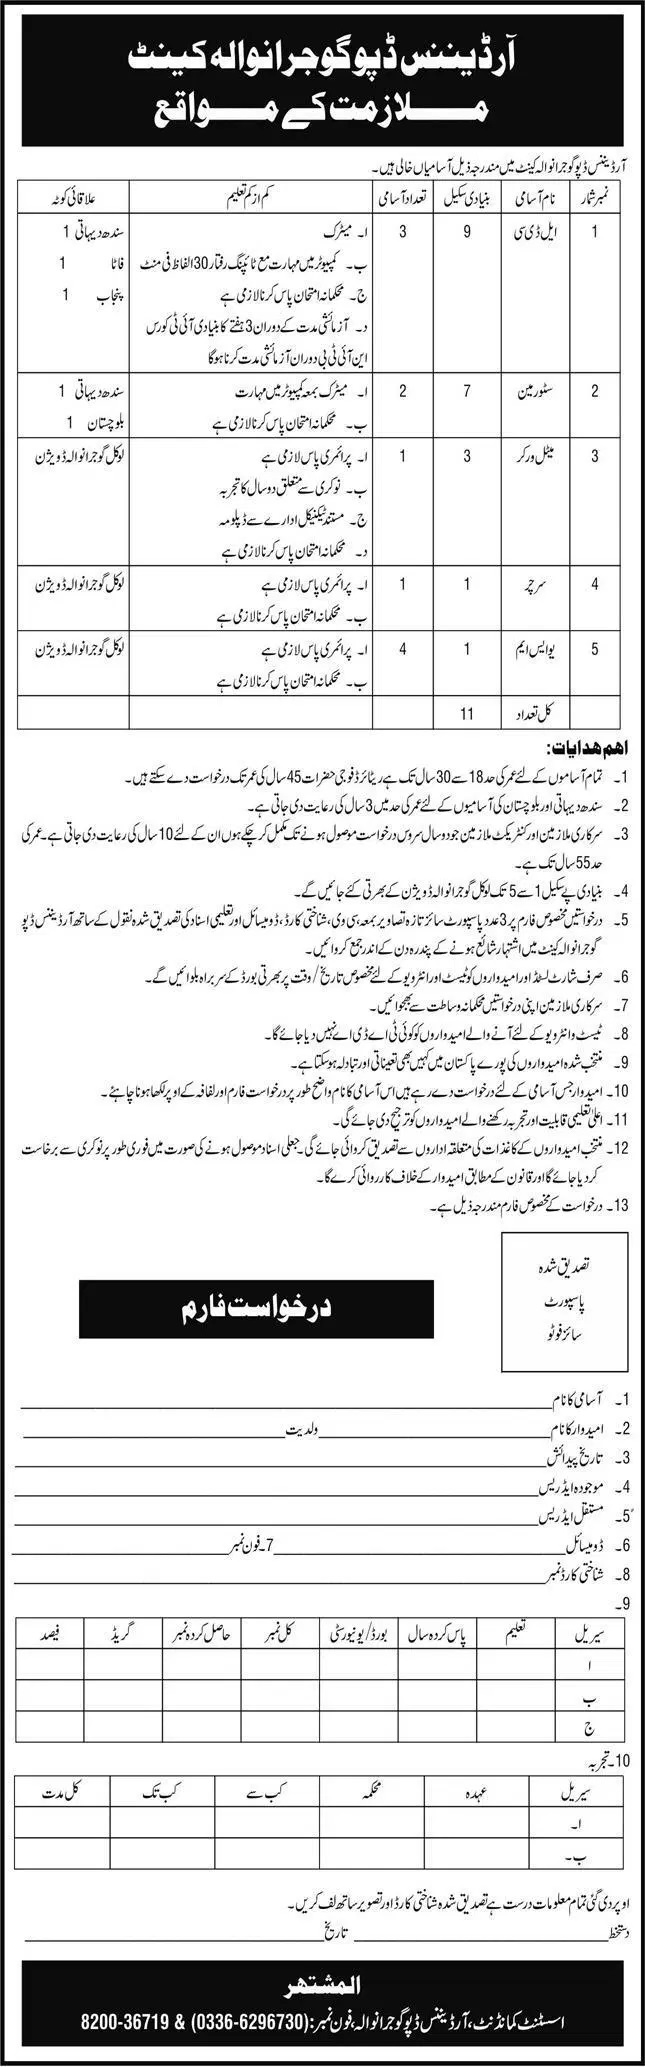 Latest Army Today Jobs Ordnance Depot Gujranwala Cantt